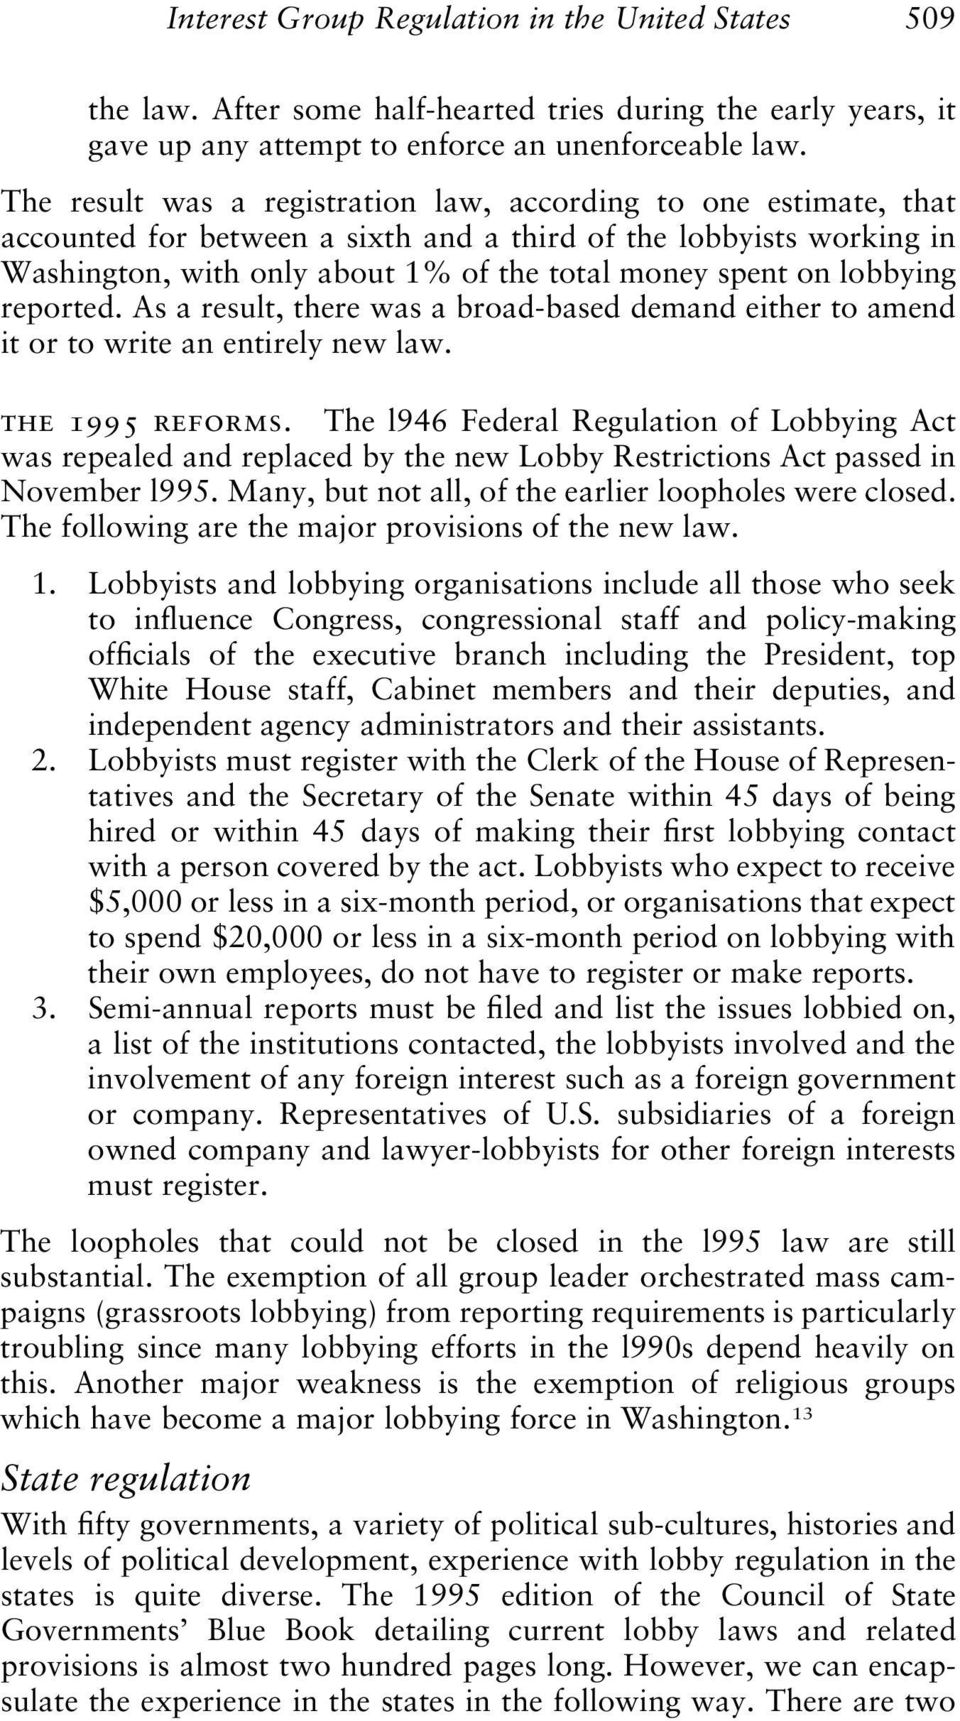 lobbying reported. As a result, there was a broad-based demand either to amend it or to write an entirely new law. the 1995 reforms.